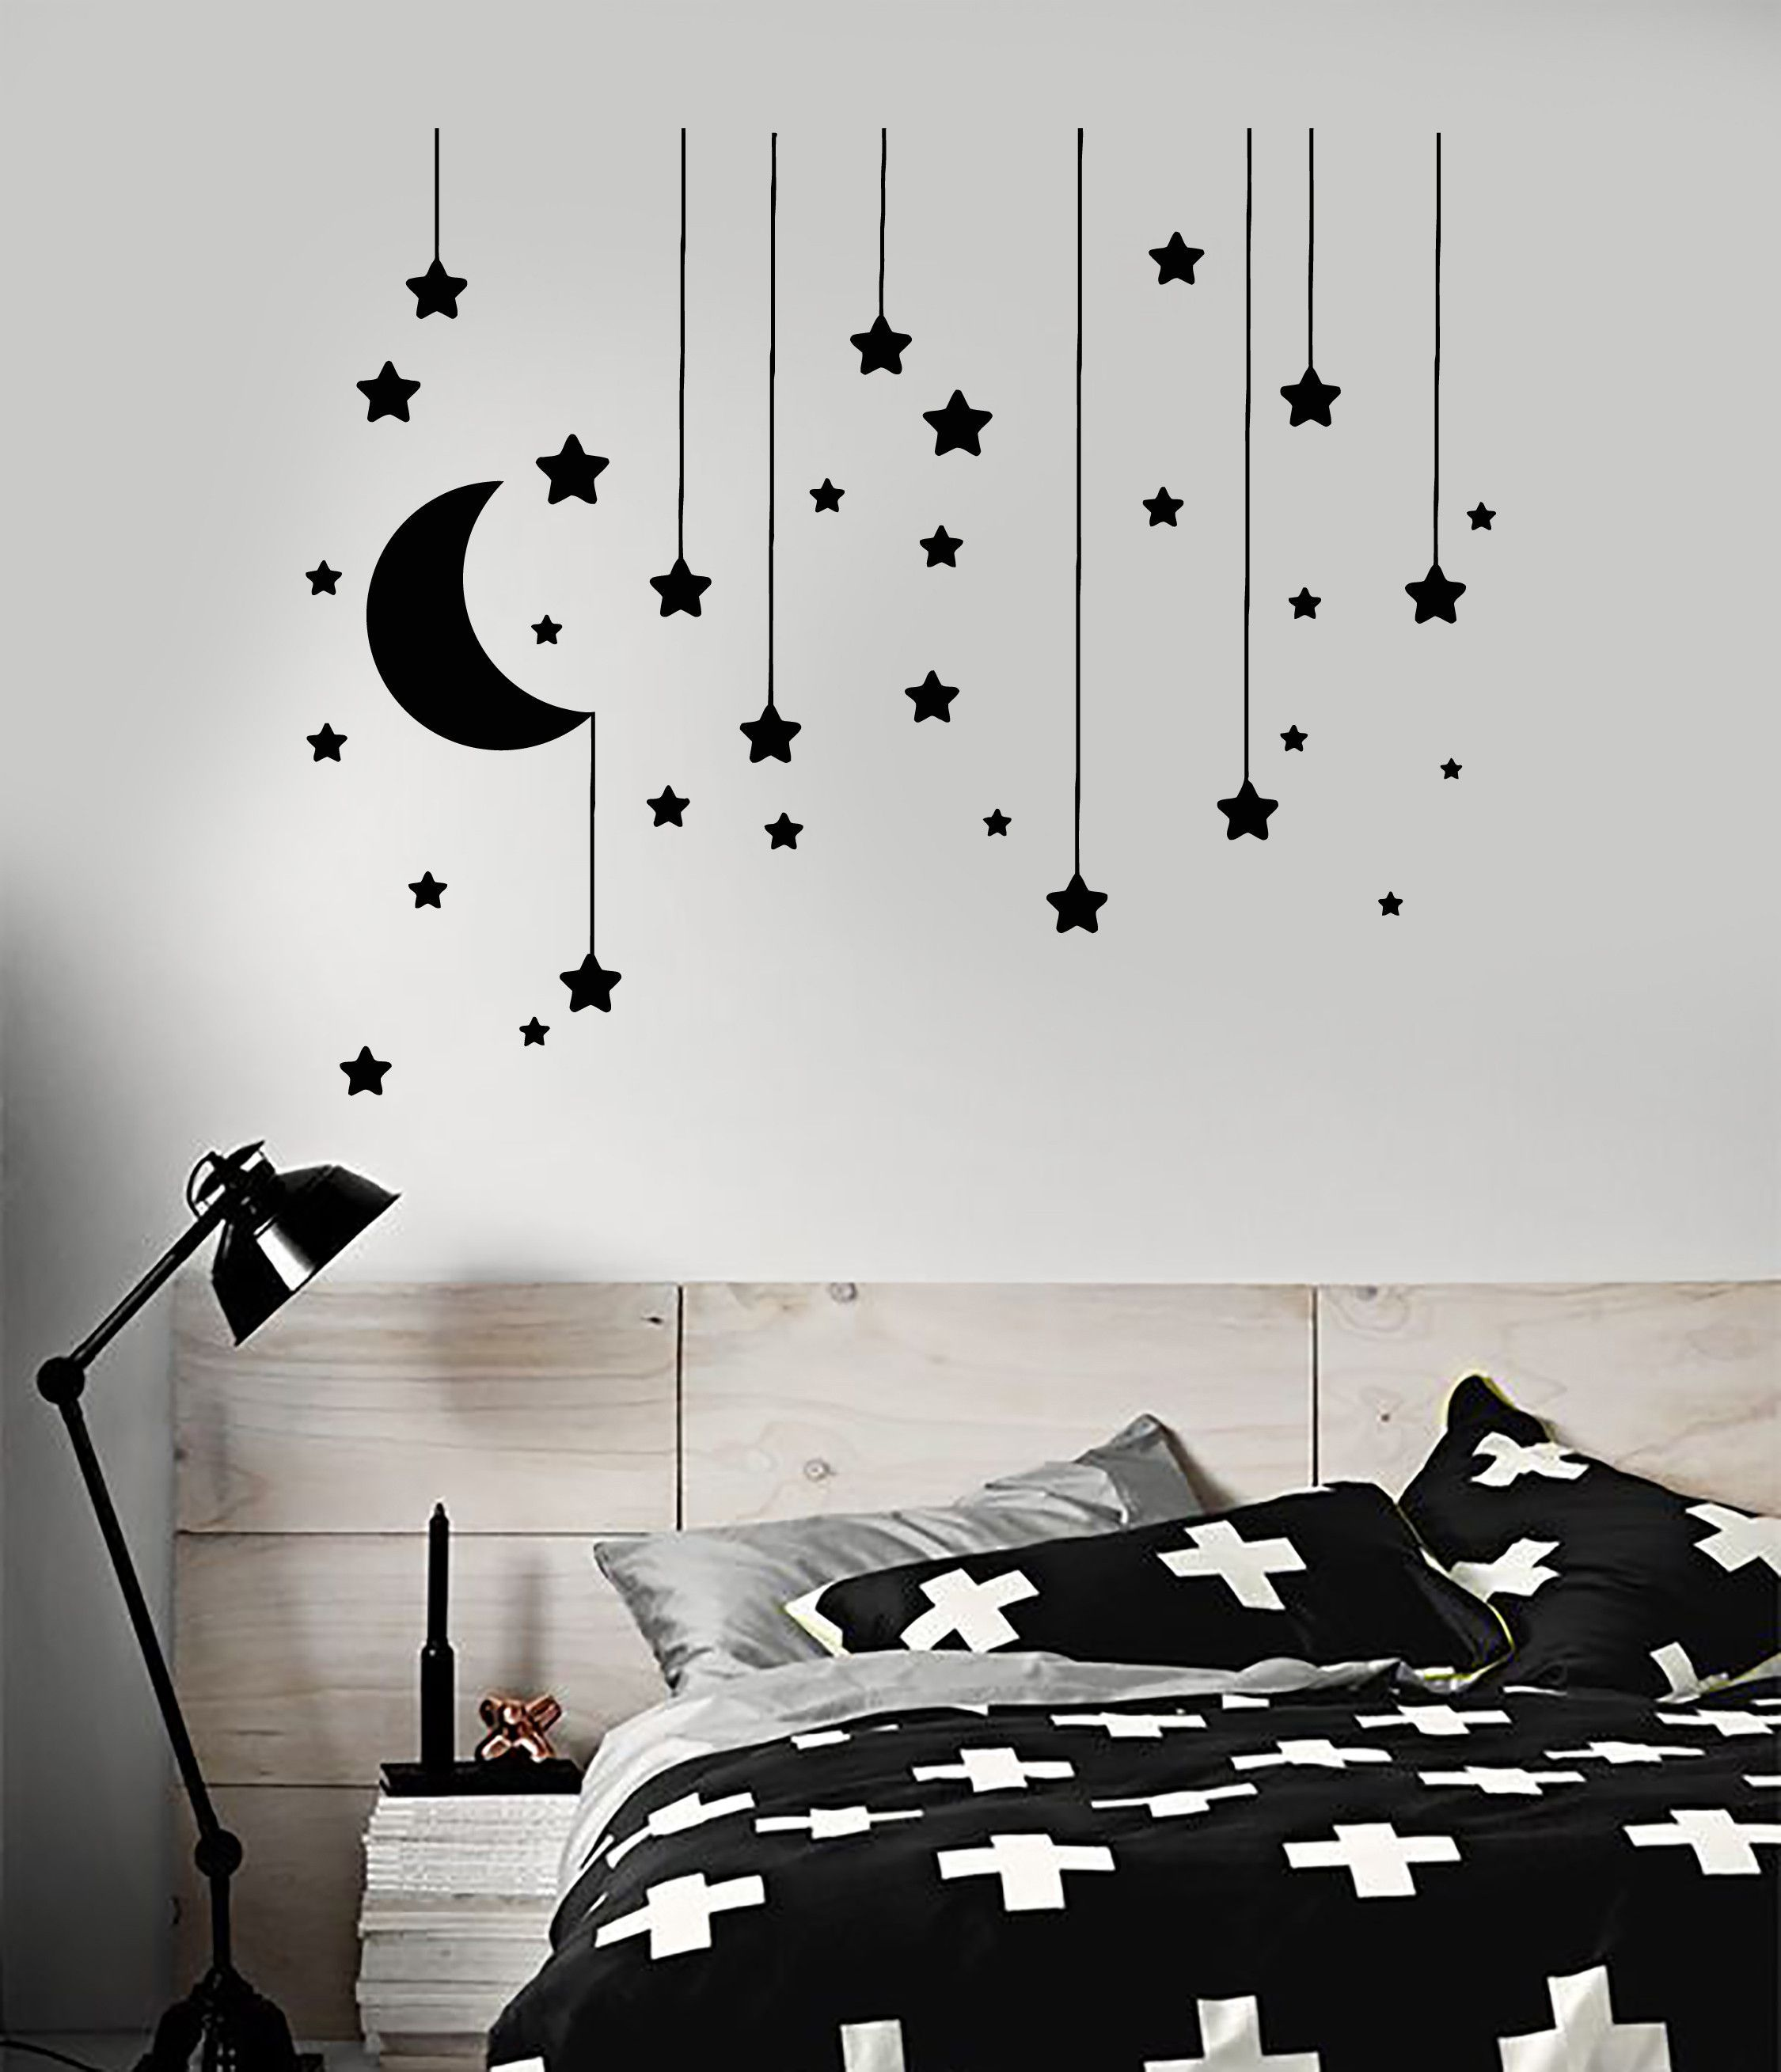 Vinyl Wall Decal Stars Crescent Moon Dream Bedroom Ideas Stickers Unique Gift Ig4833 Bedroom Wall Designs Wall Decor Bedroom Bedroom Wall Paint